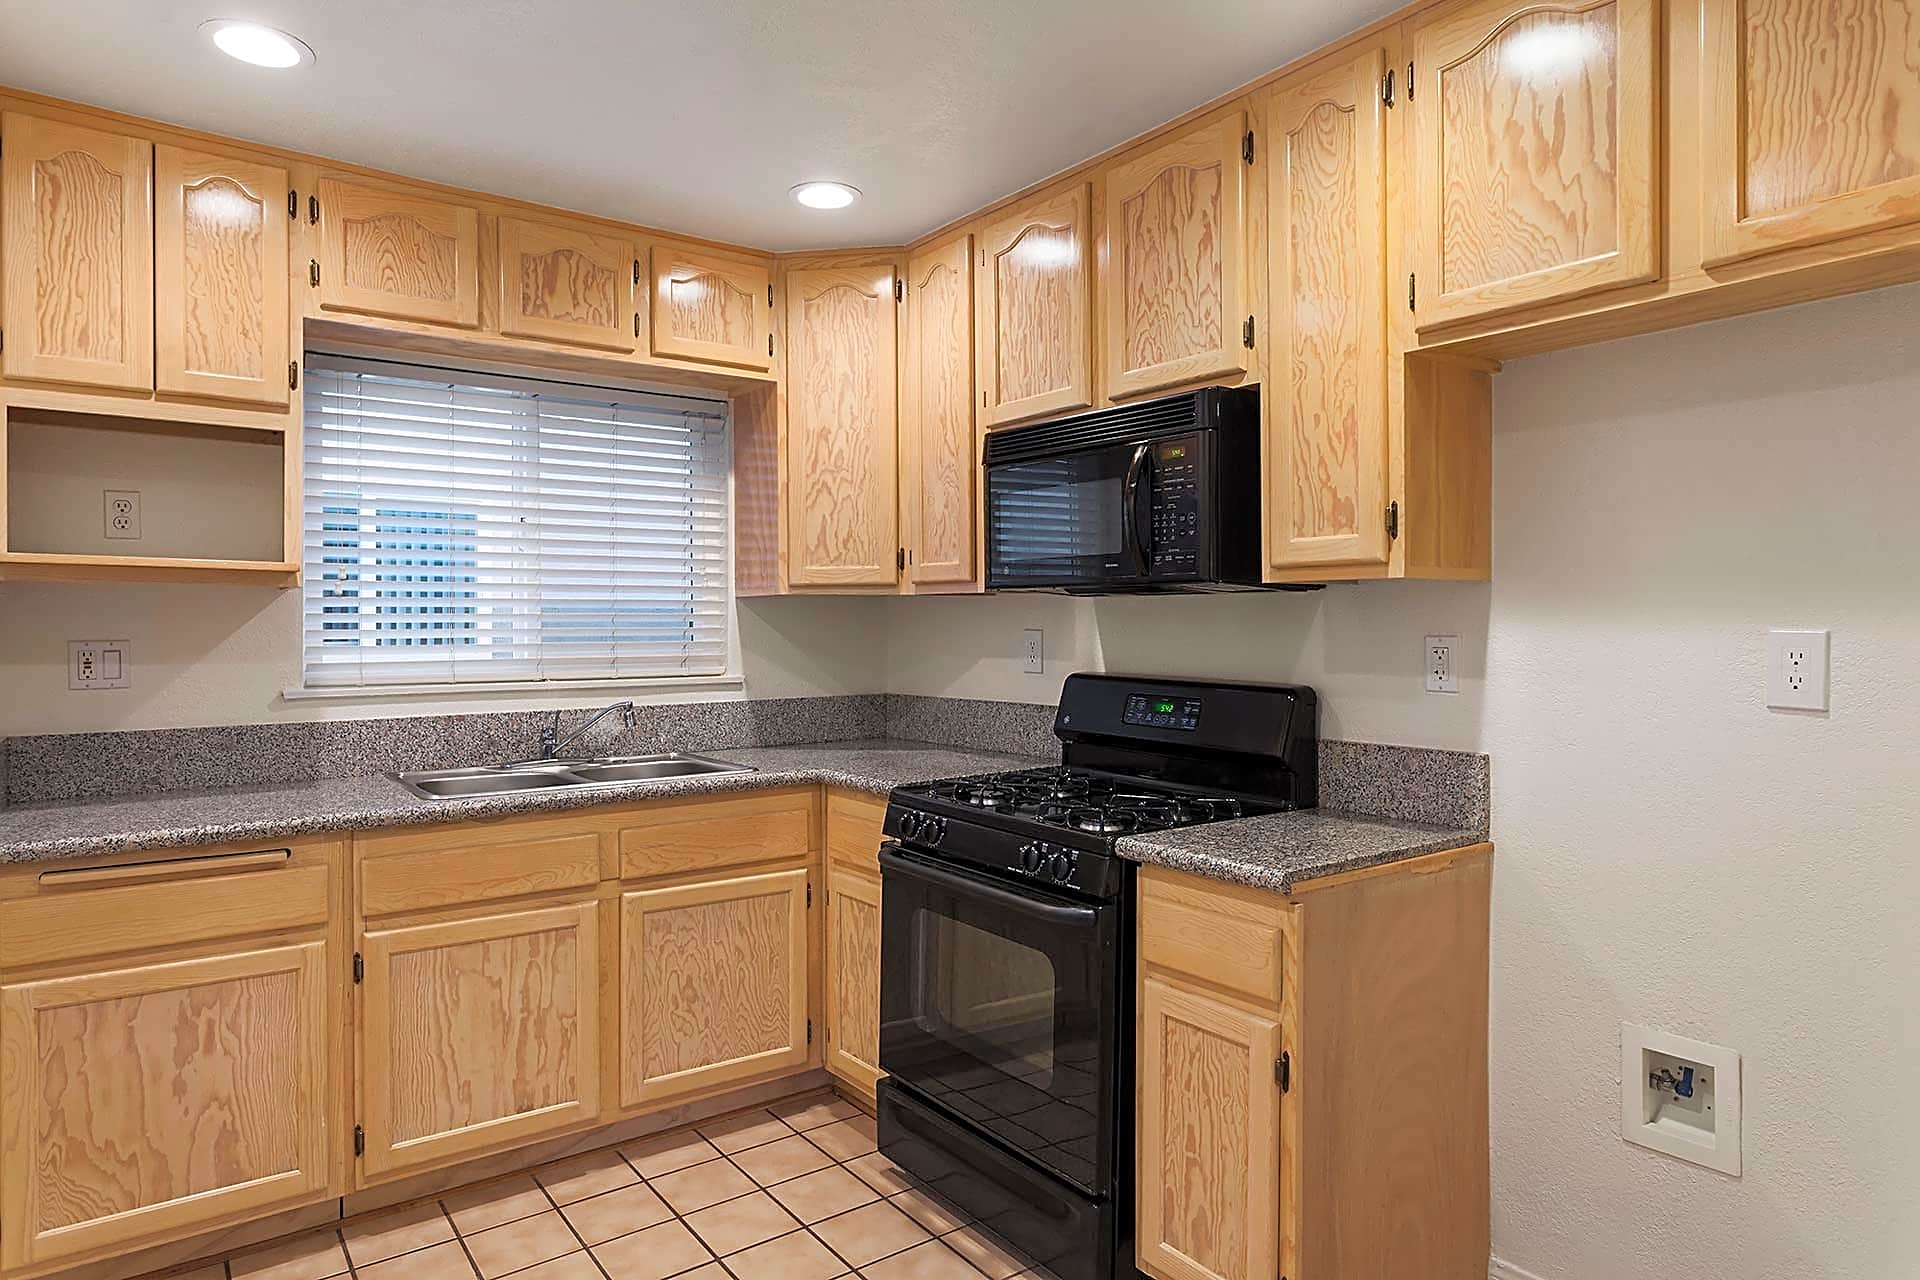 Apartments for Rent in Lakewood, CA - Lakewood Manor Kitchen